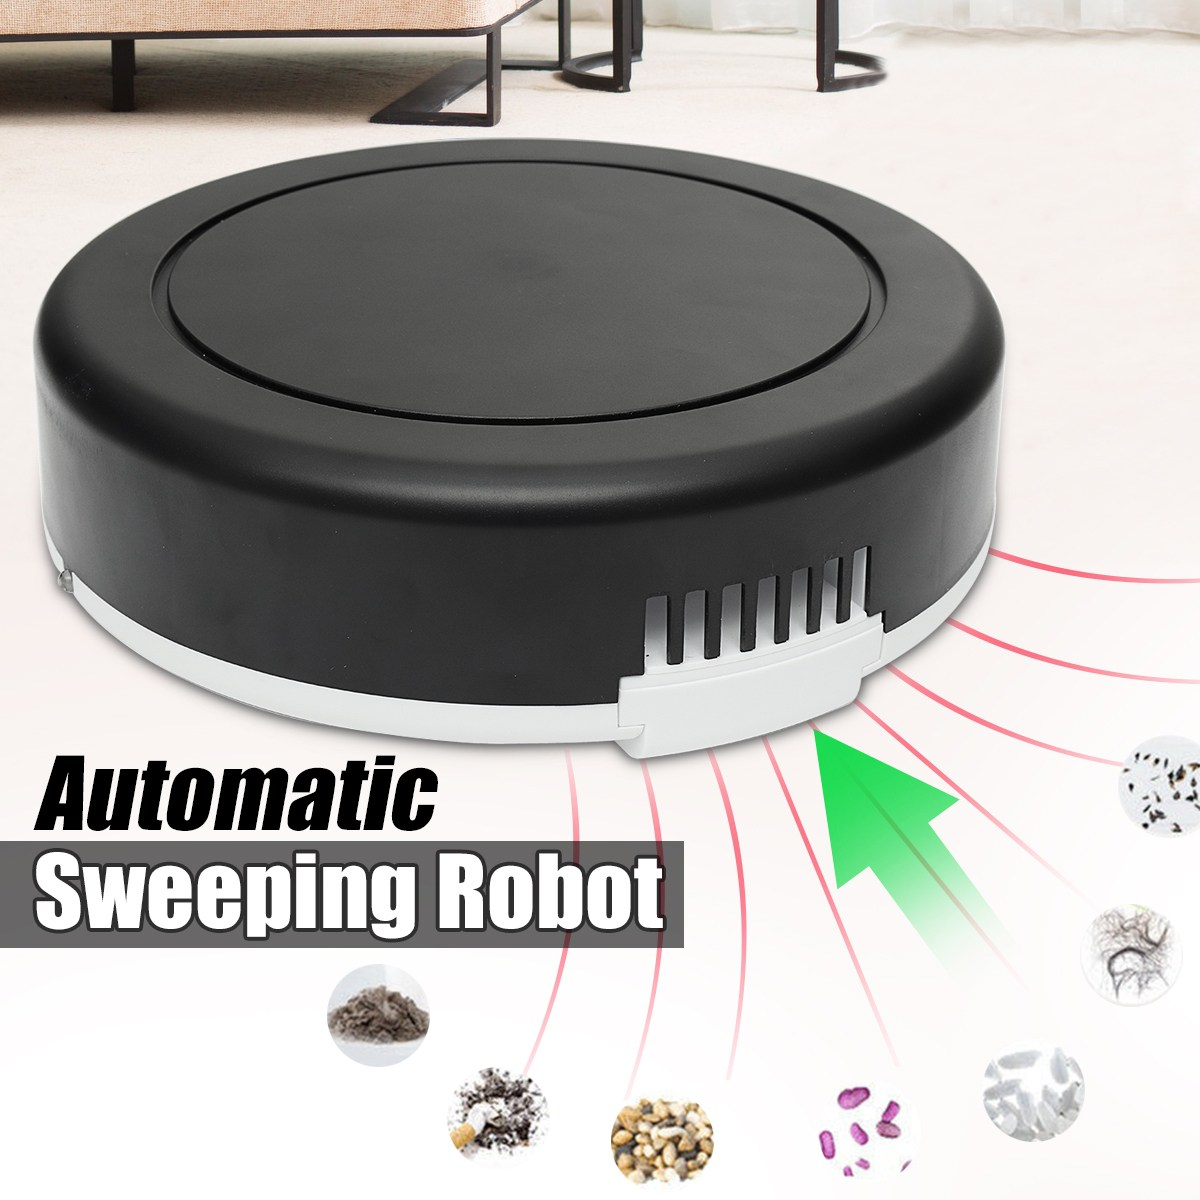 Automatic Sweeping Robot Slim Sweep Suction Drag One Machine Small Mini Rechargeable Vacuum Cleaner Sweeping v bot gvr610d intelligent sweeping robot vacuum cleaner home sweep suction automatic wifi wireless one machine